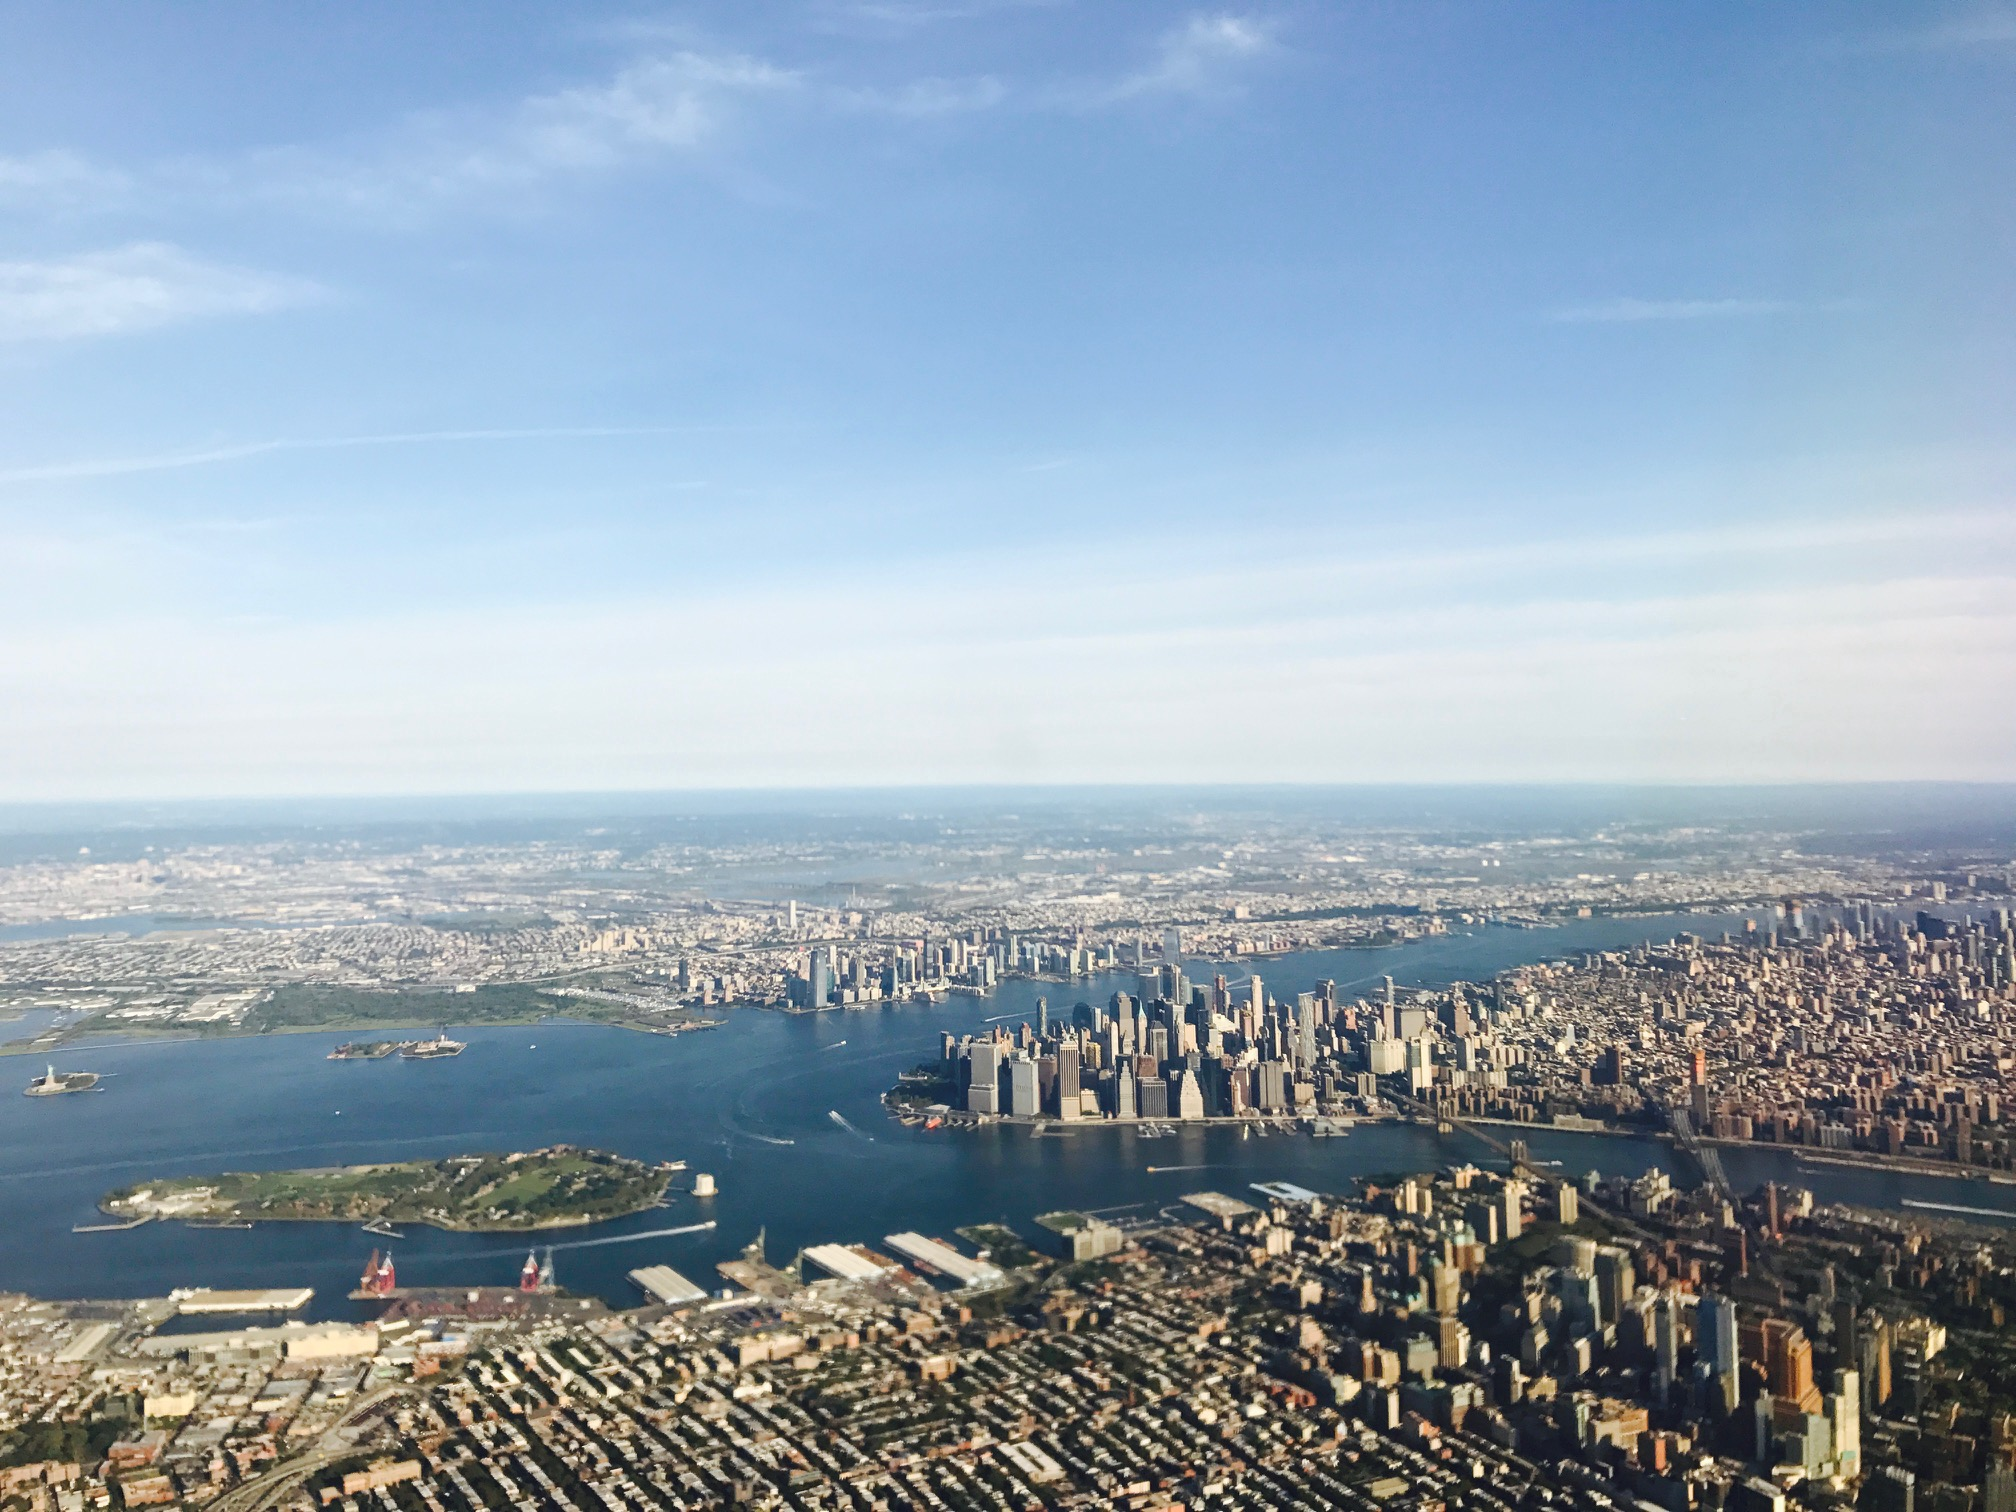 Flying into New York CIty on Labor Day weekend